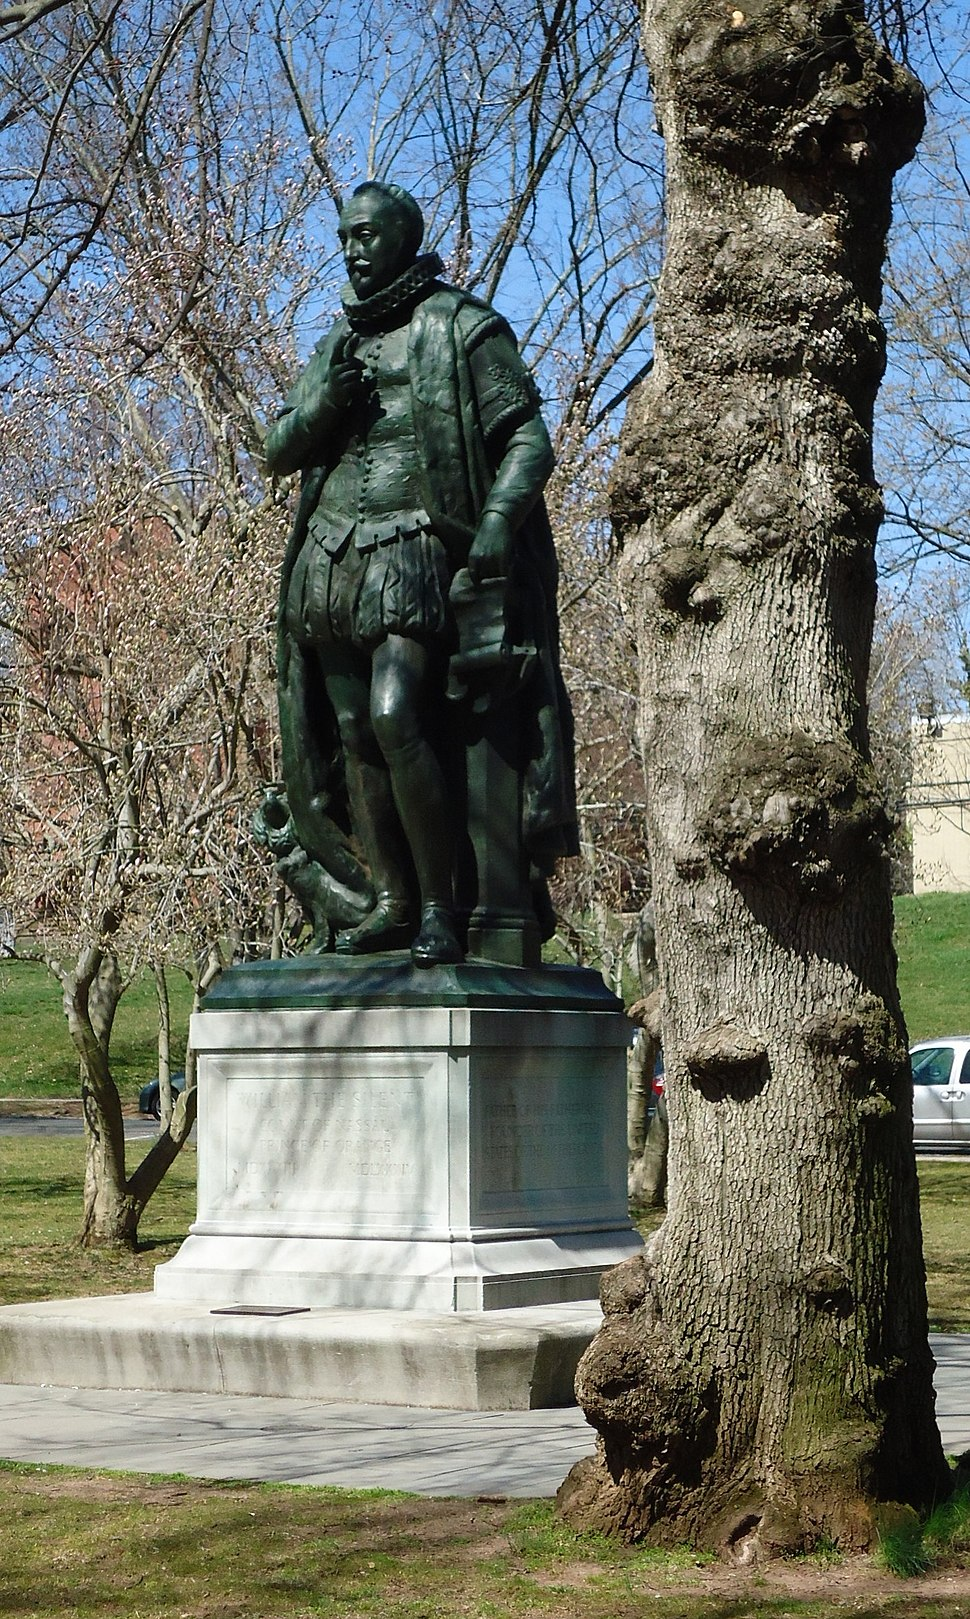 Rutgers University statue and tree in April College Campus